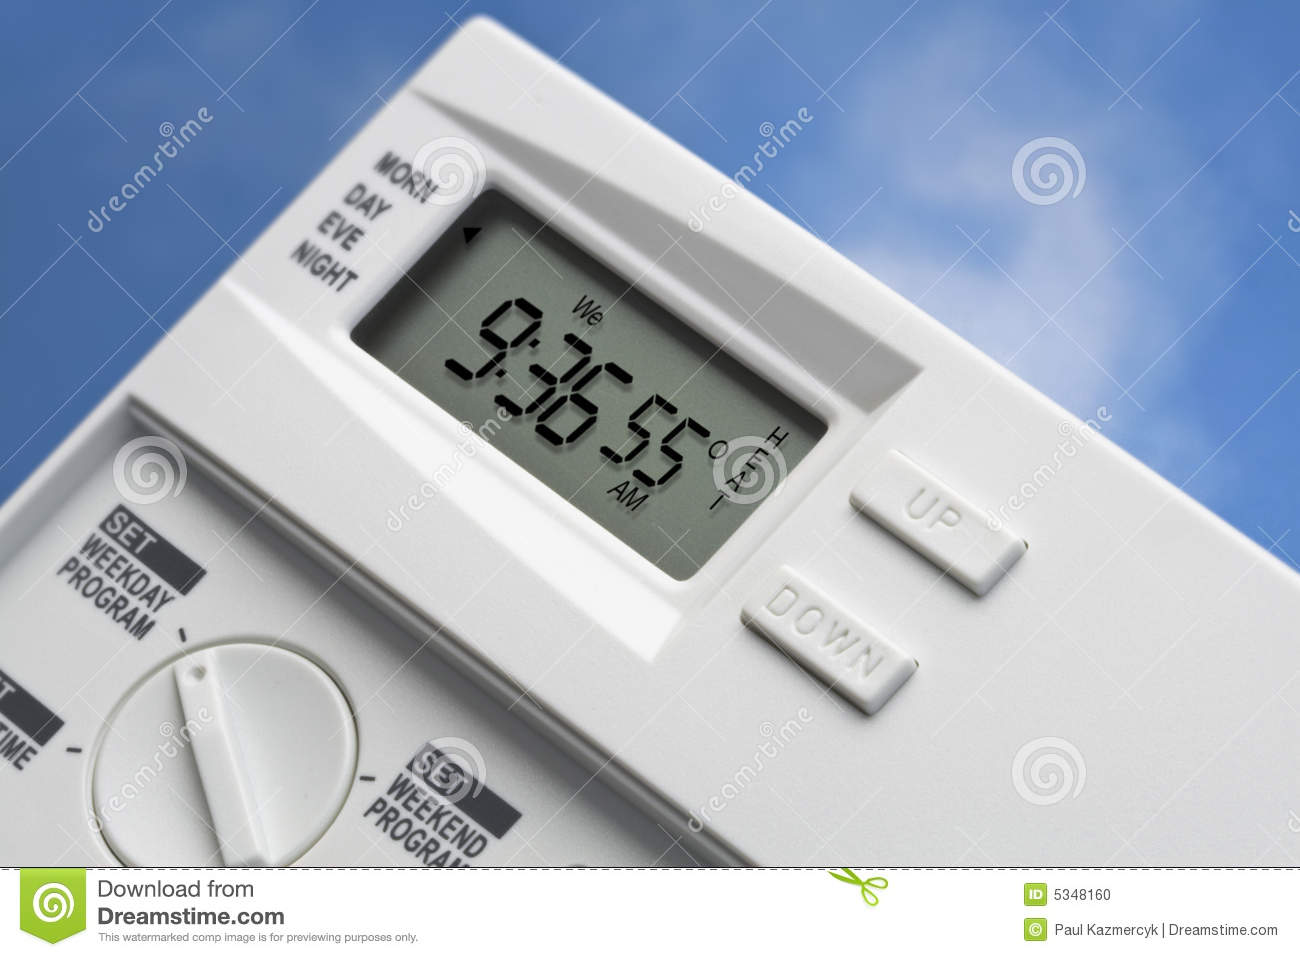 Sky Thermostat 55 Degrees Heat V2 Stock Photo Image 5348160